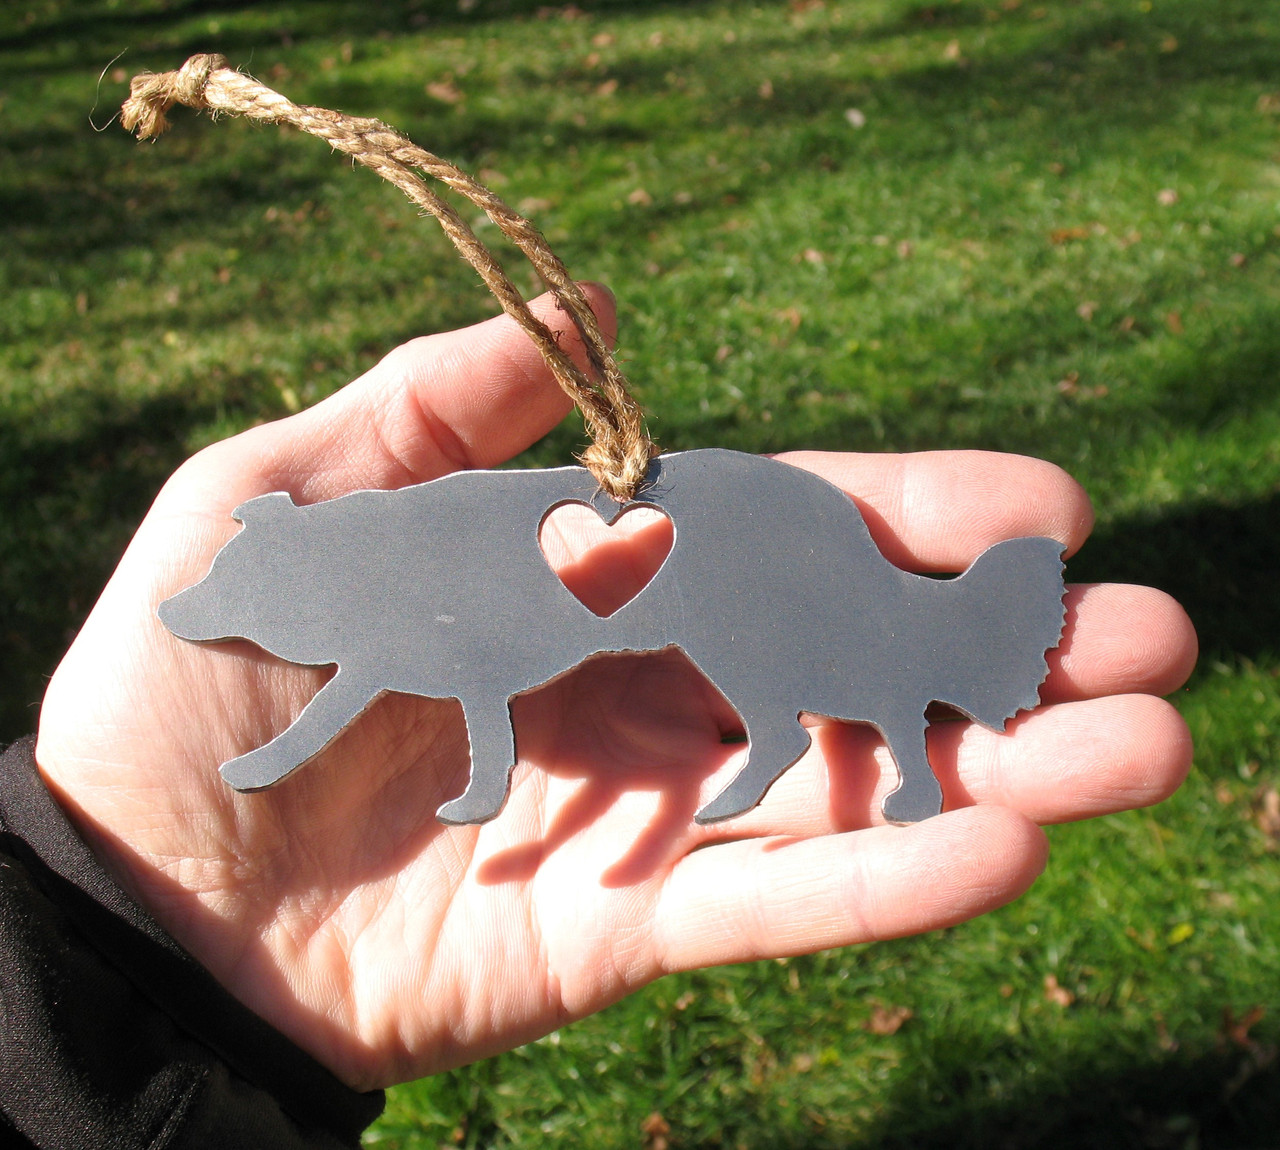 Border Collie 3 Pet Loss Gift Ornament - Pet Memorial - Dog Sympathy Remembrance Gift - Metal Dog Christmas Ornament